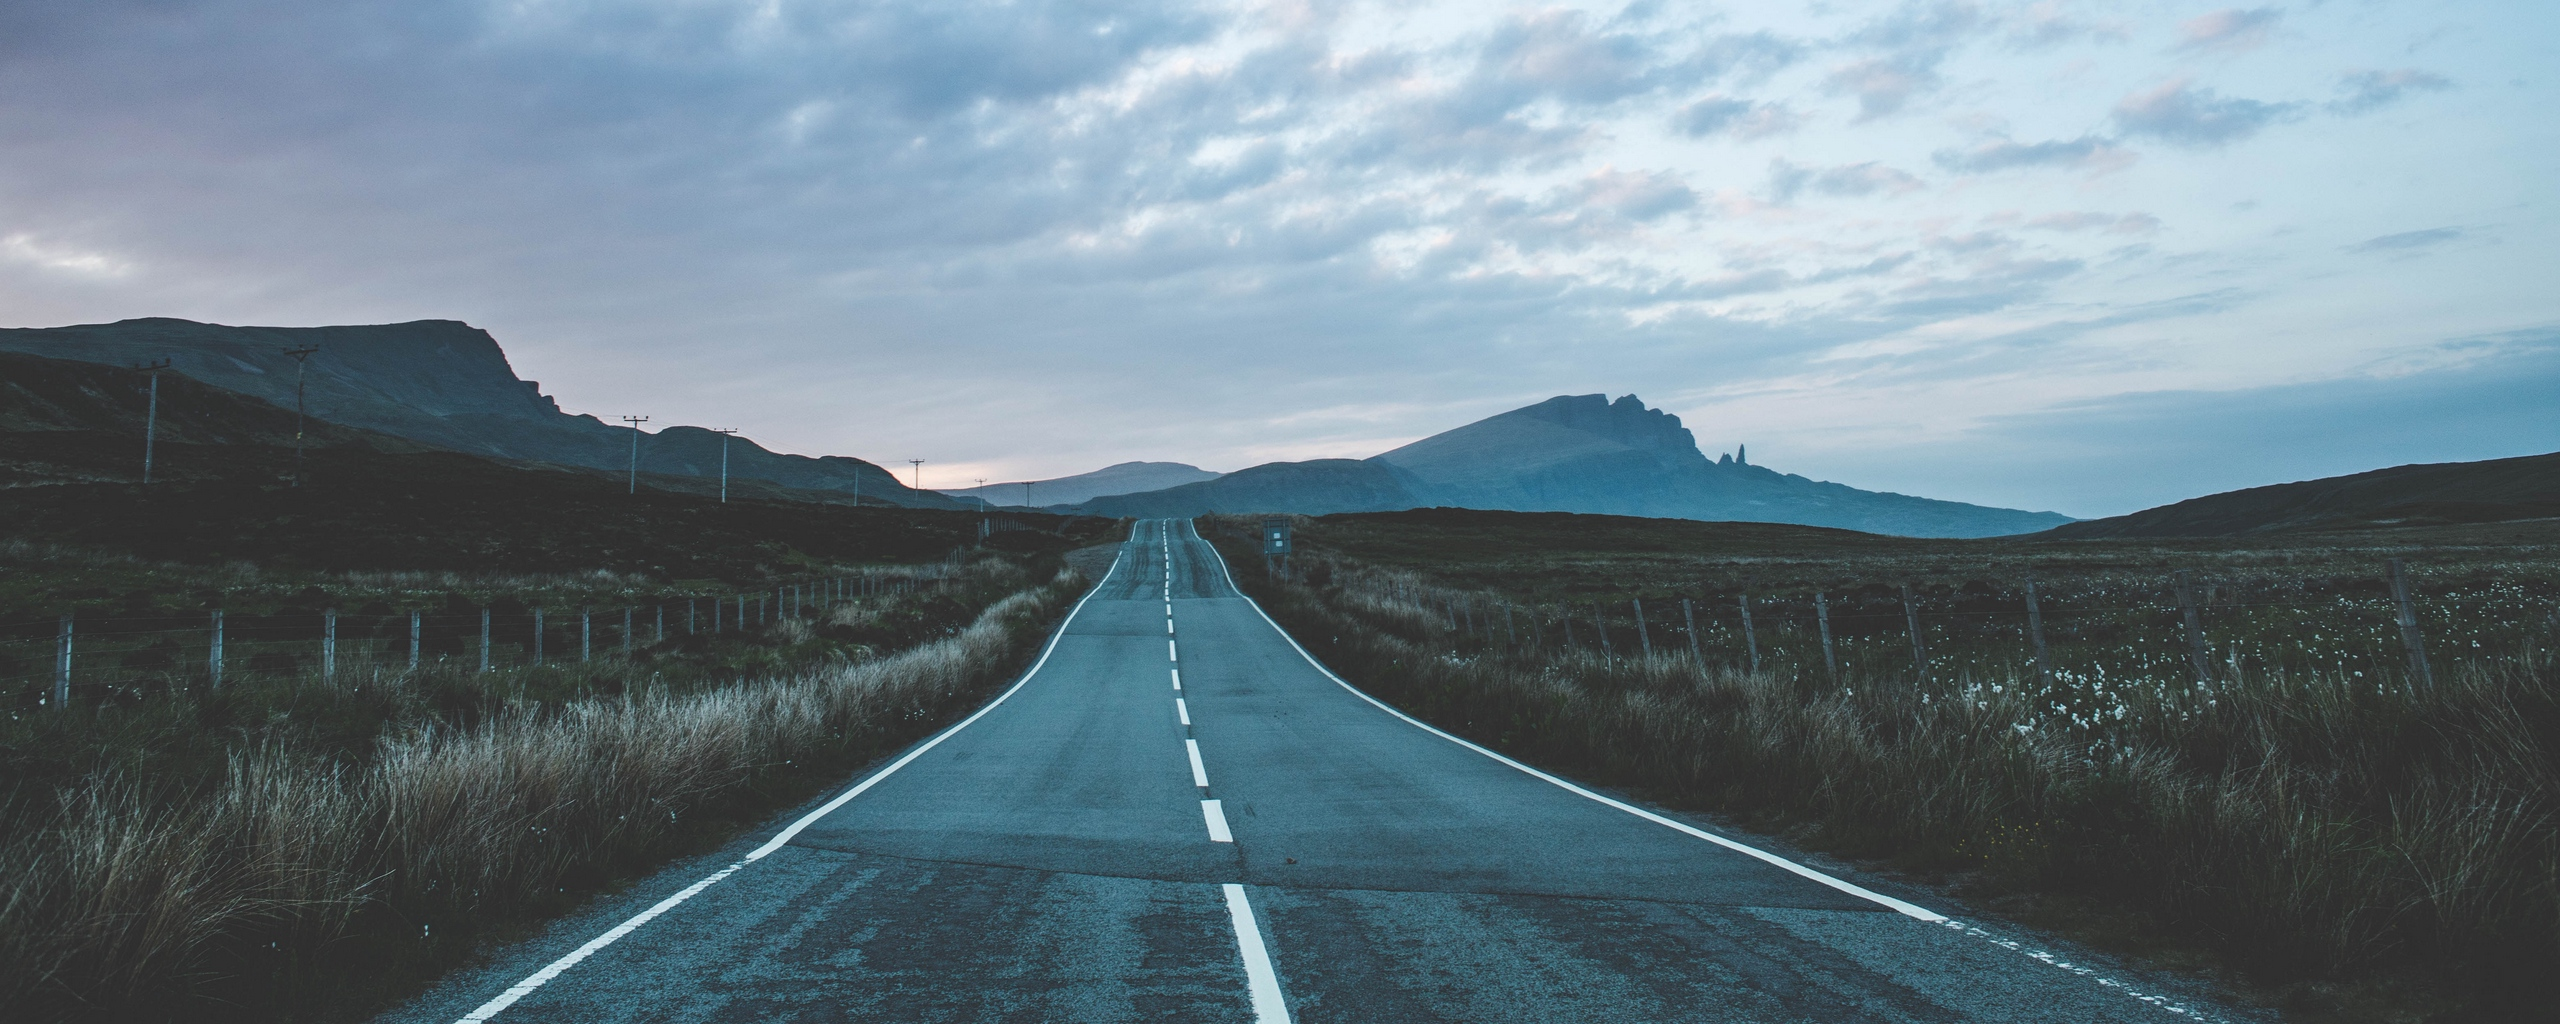 Download wallpaper 2560x1024 road marking mountains portree 2560x1024